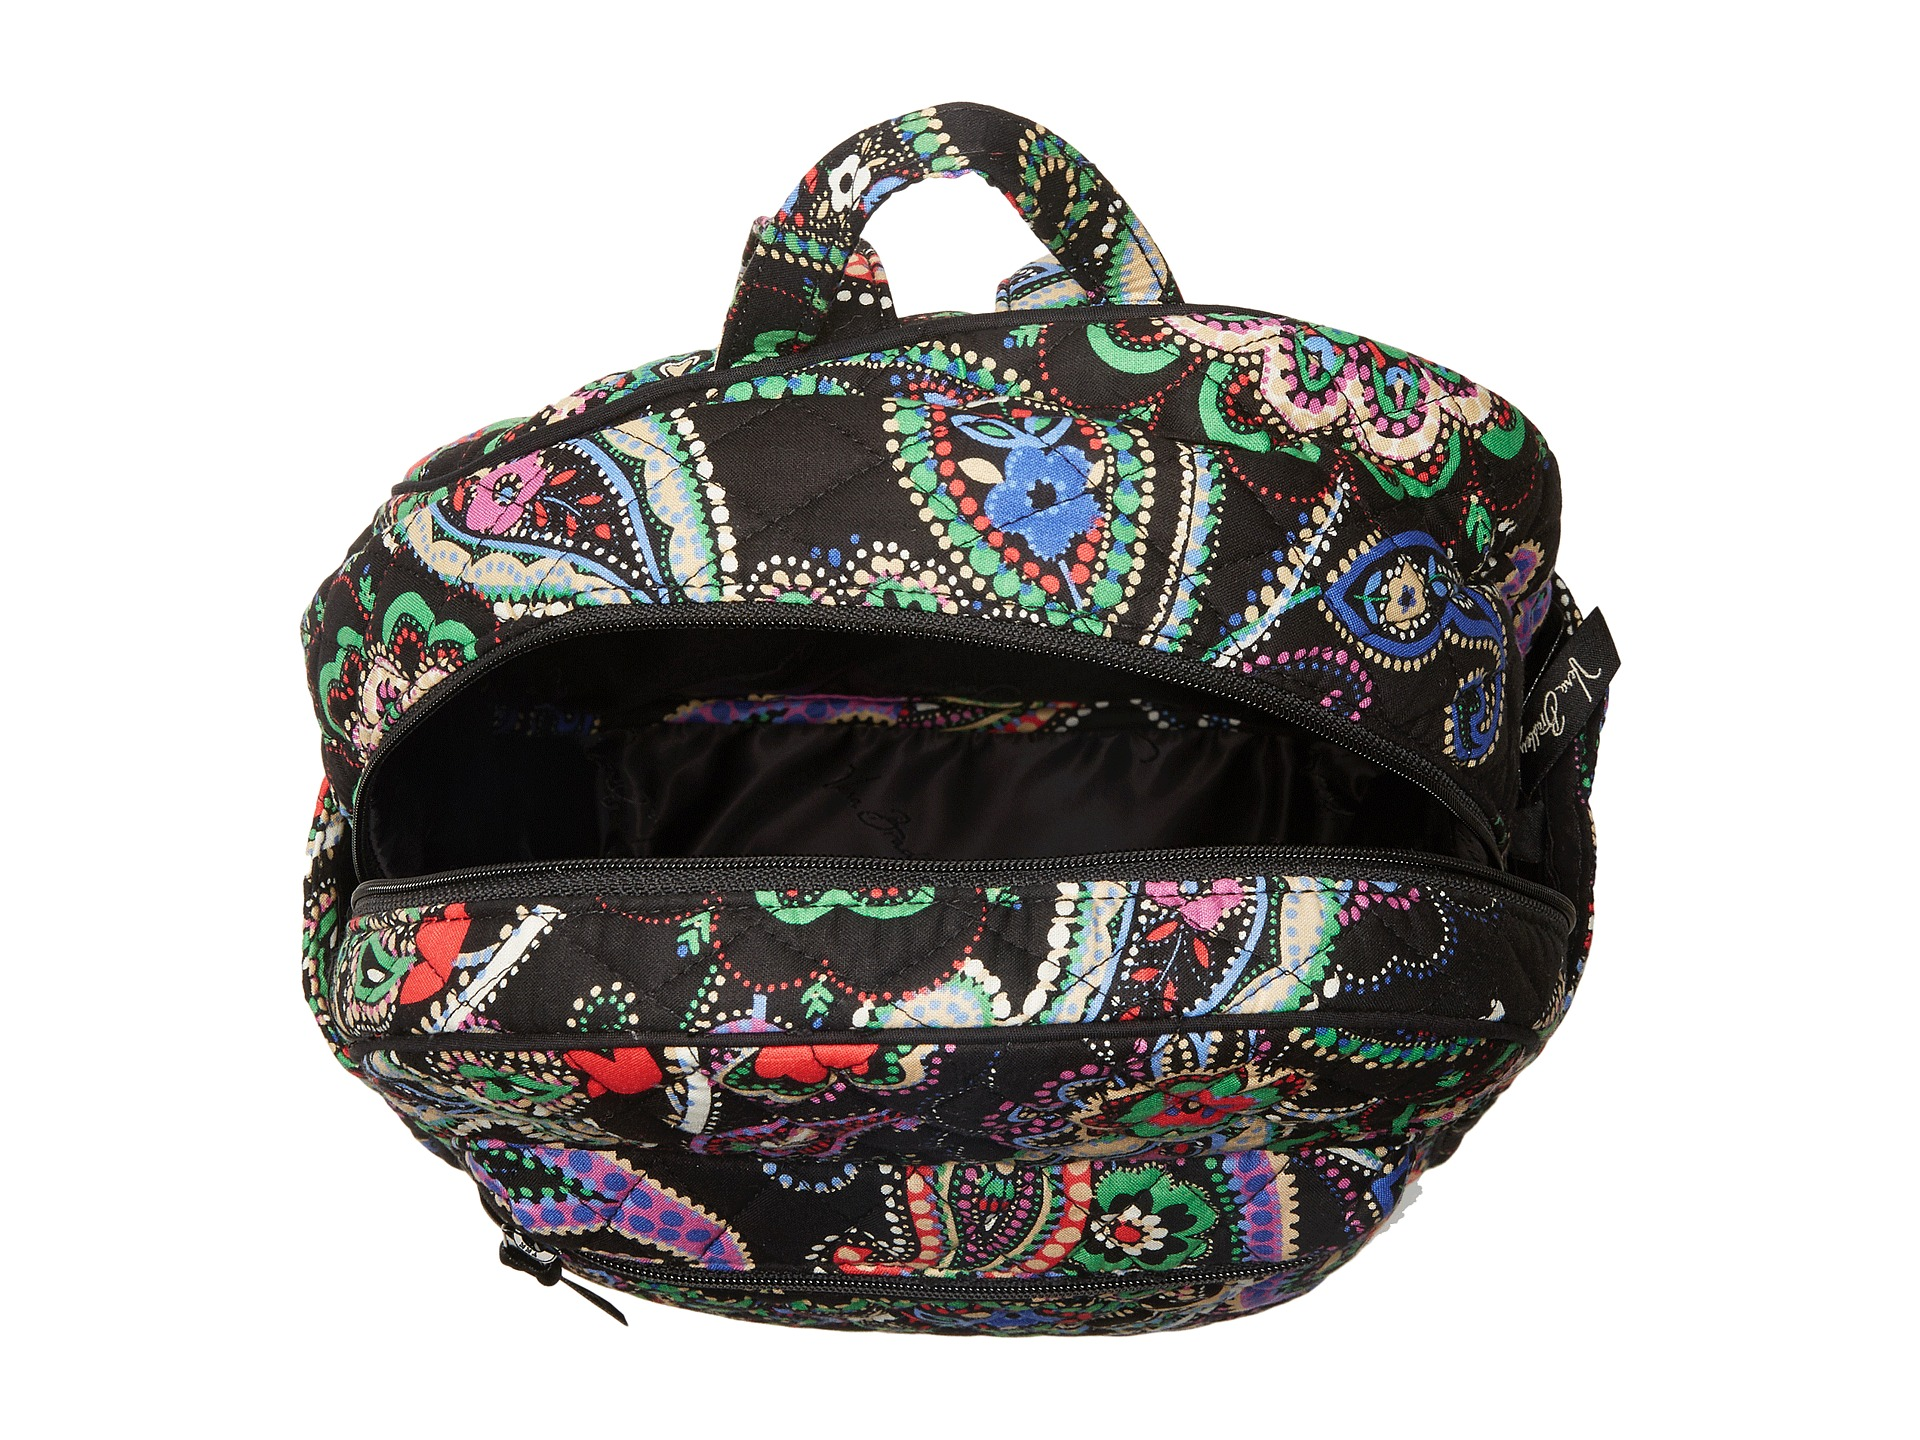 Find vera bradley sale at Macy's Macy's Presents: The Edit - A curated mix of fashion and inspiration Check It Out Free Shipping with $99 purchase + Free Store Pickup.